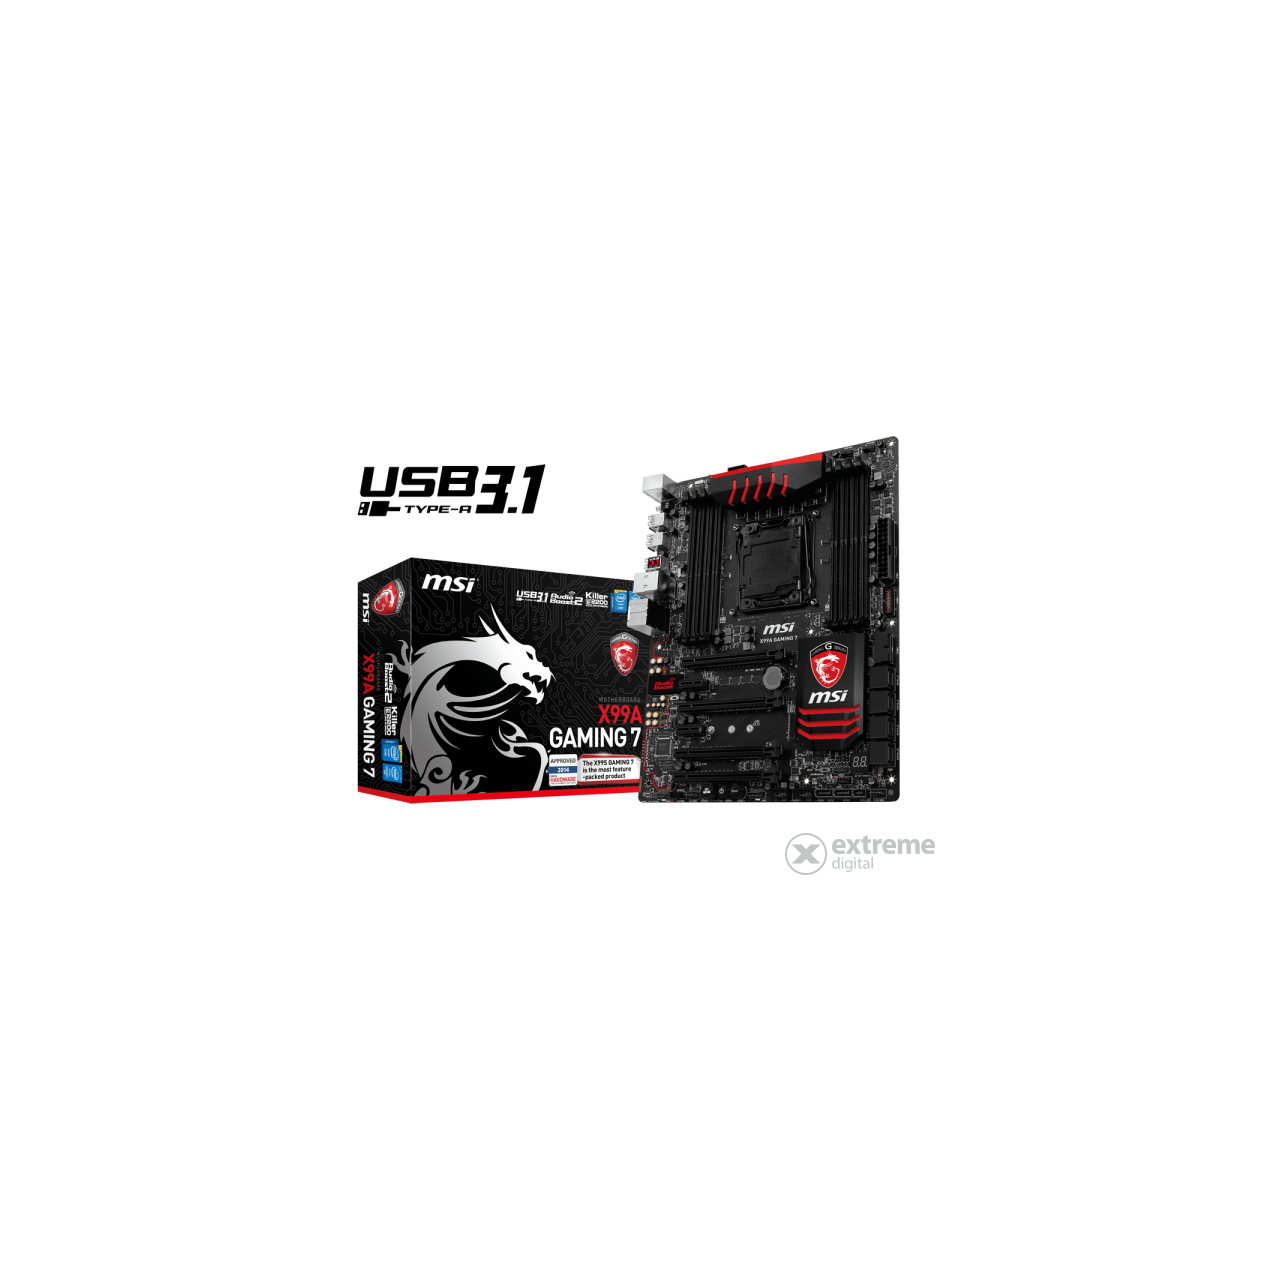 MSI X99A GAMING 7 Intel X99 LGA2011 ATX alaplap